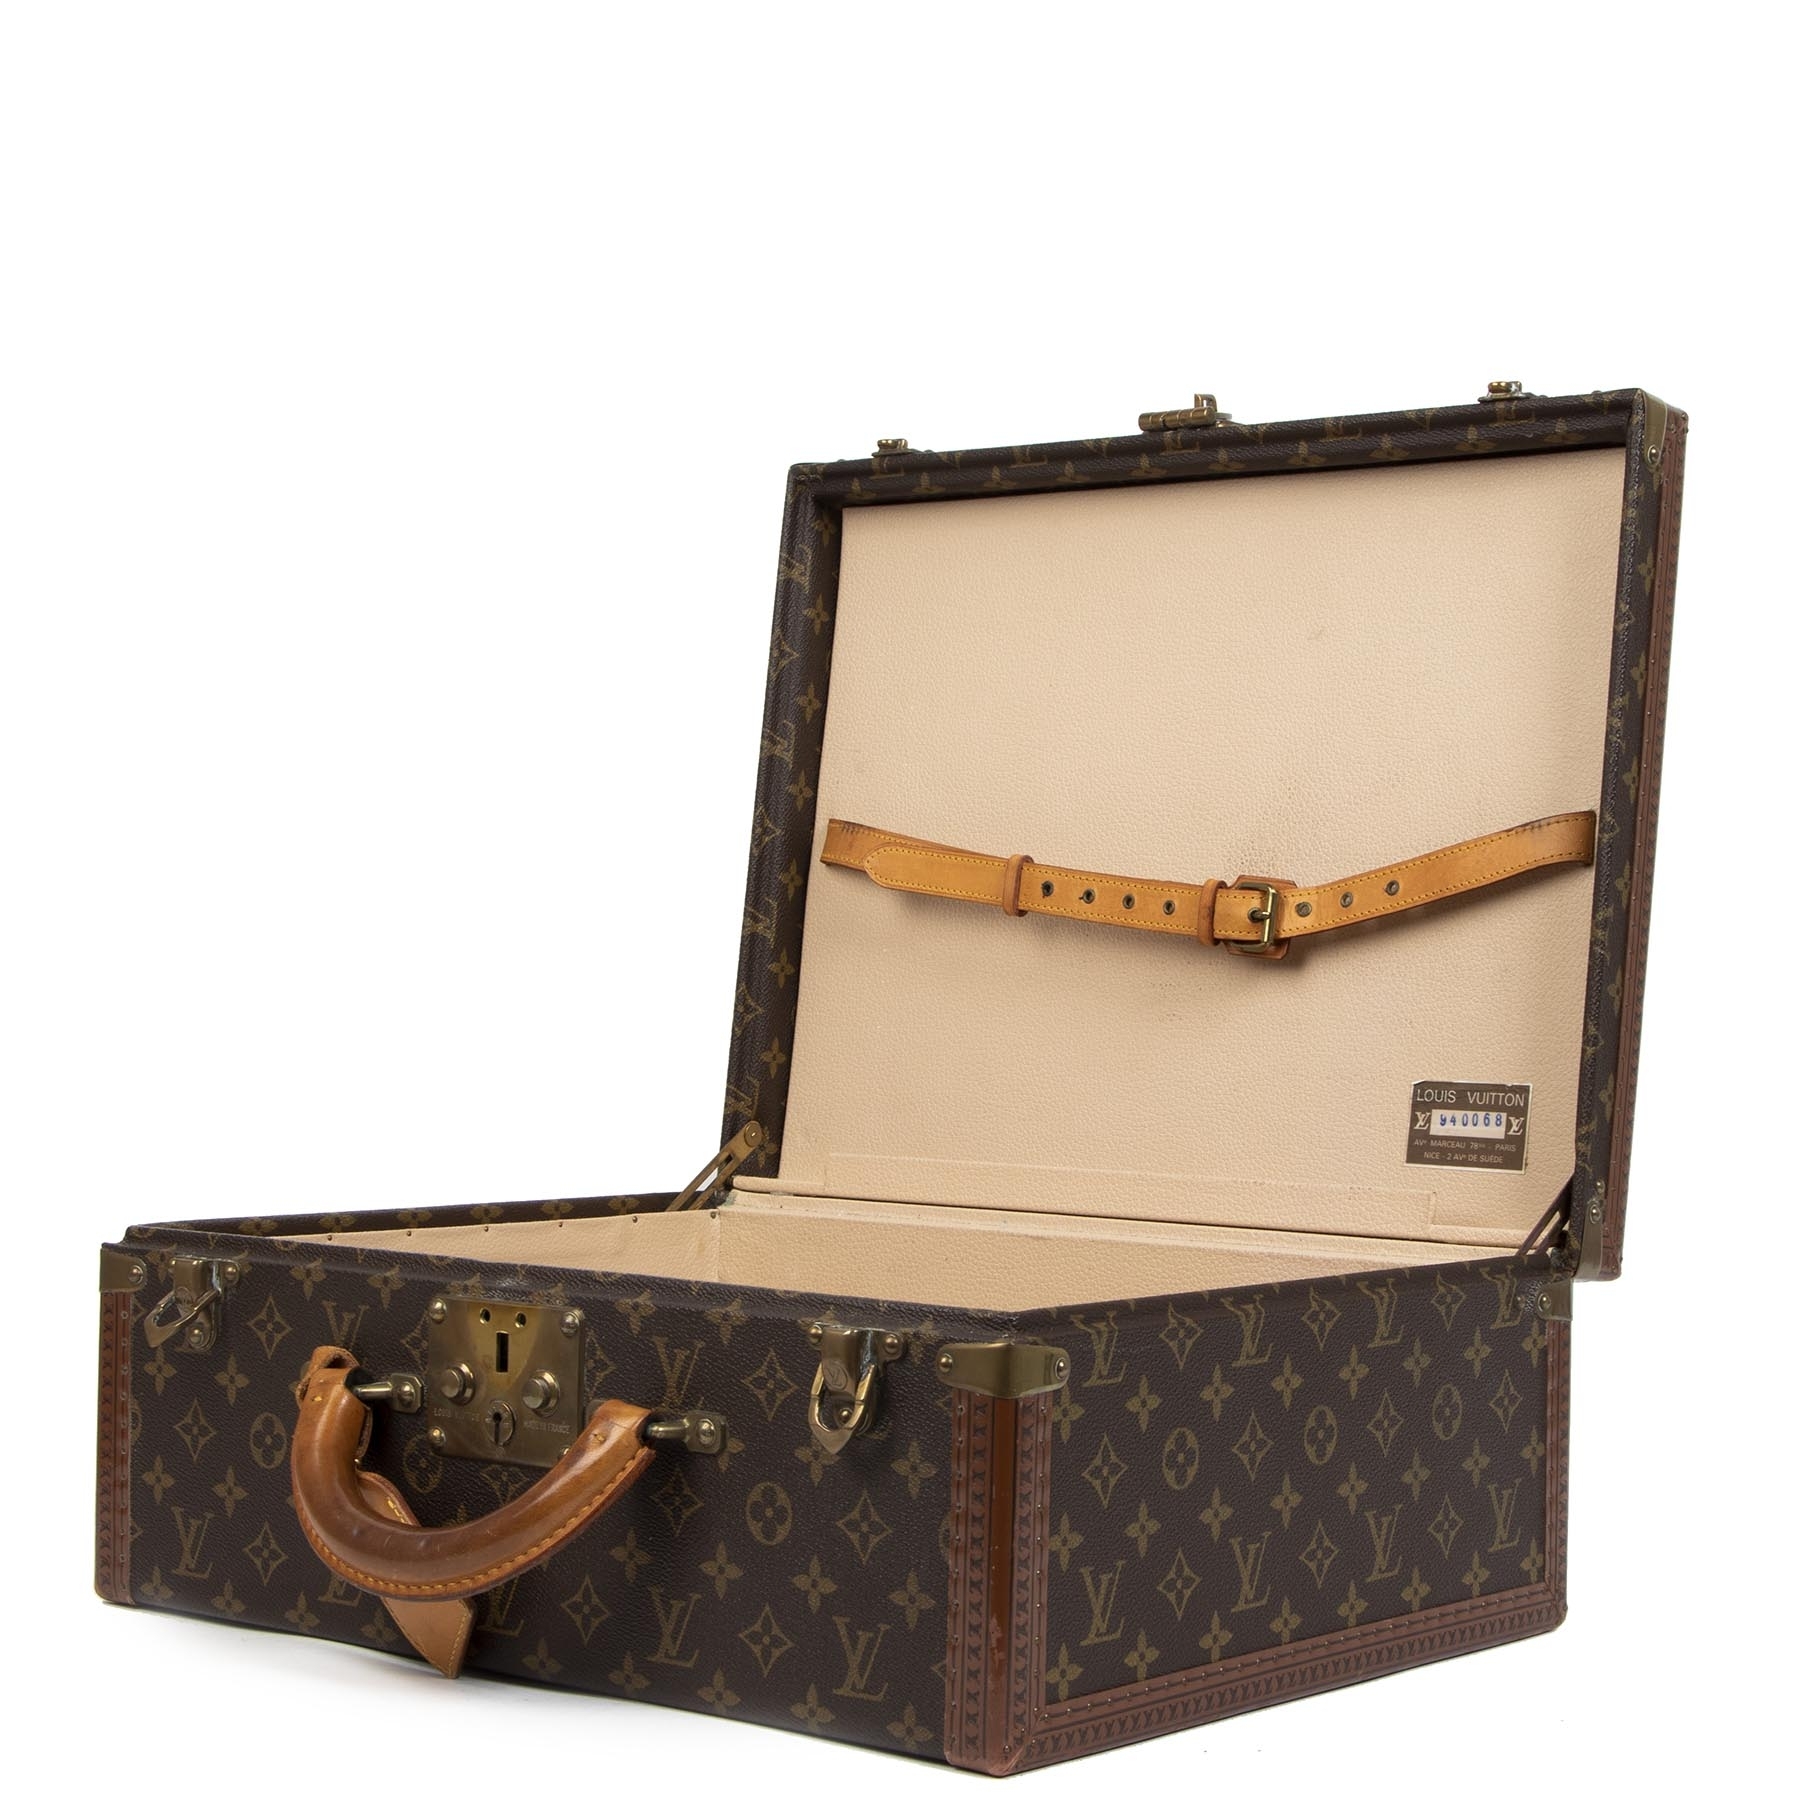 Louis Vuitton Monogram Canvas President 45 Trunk